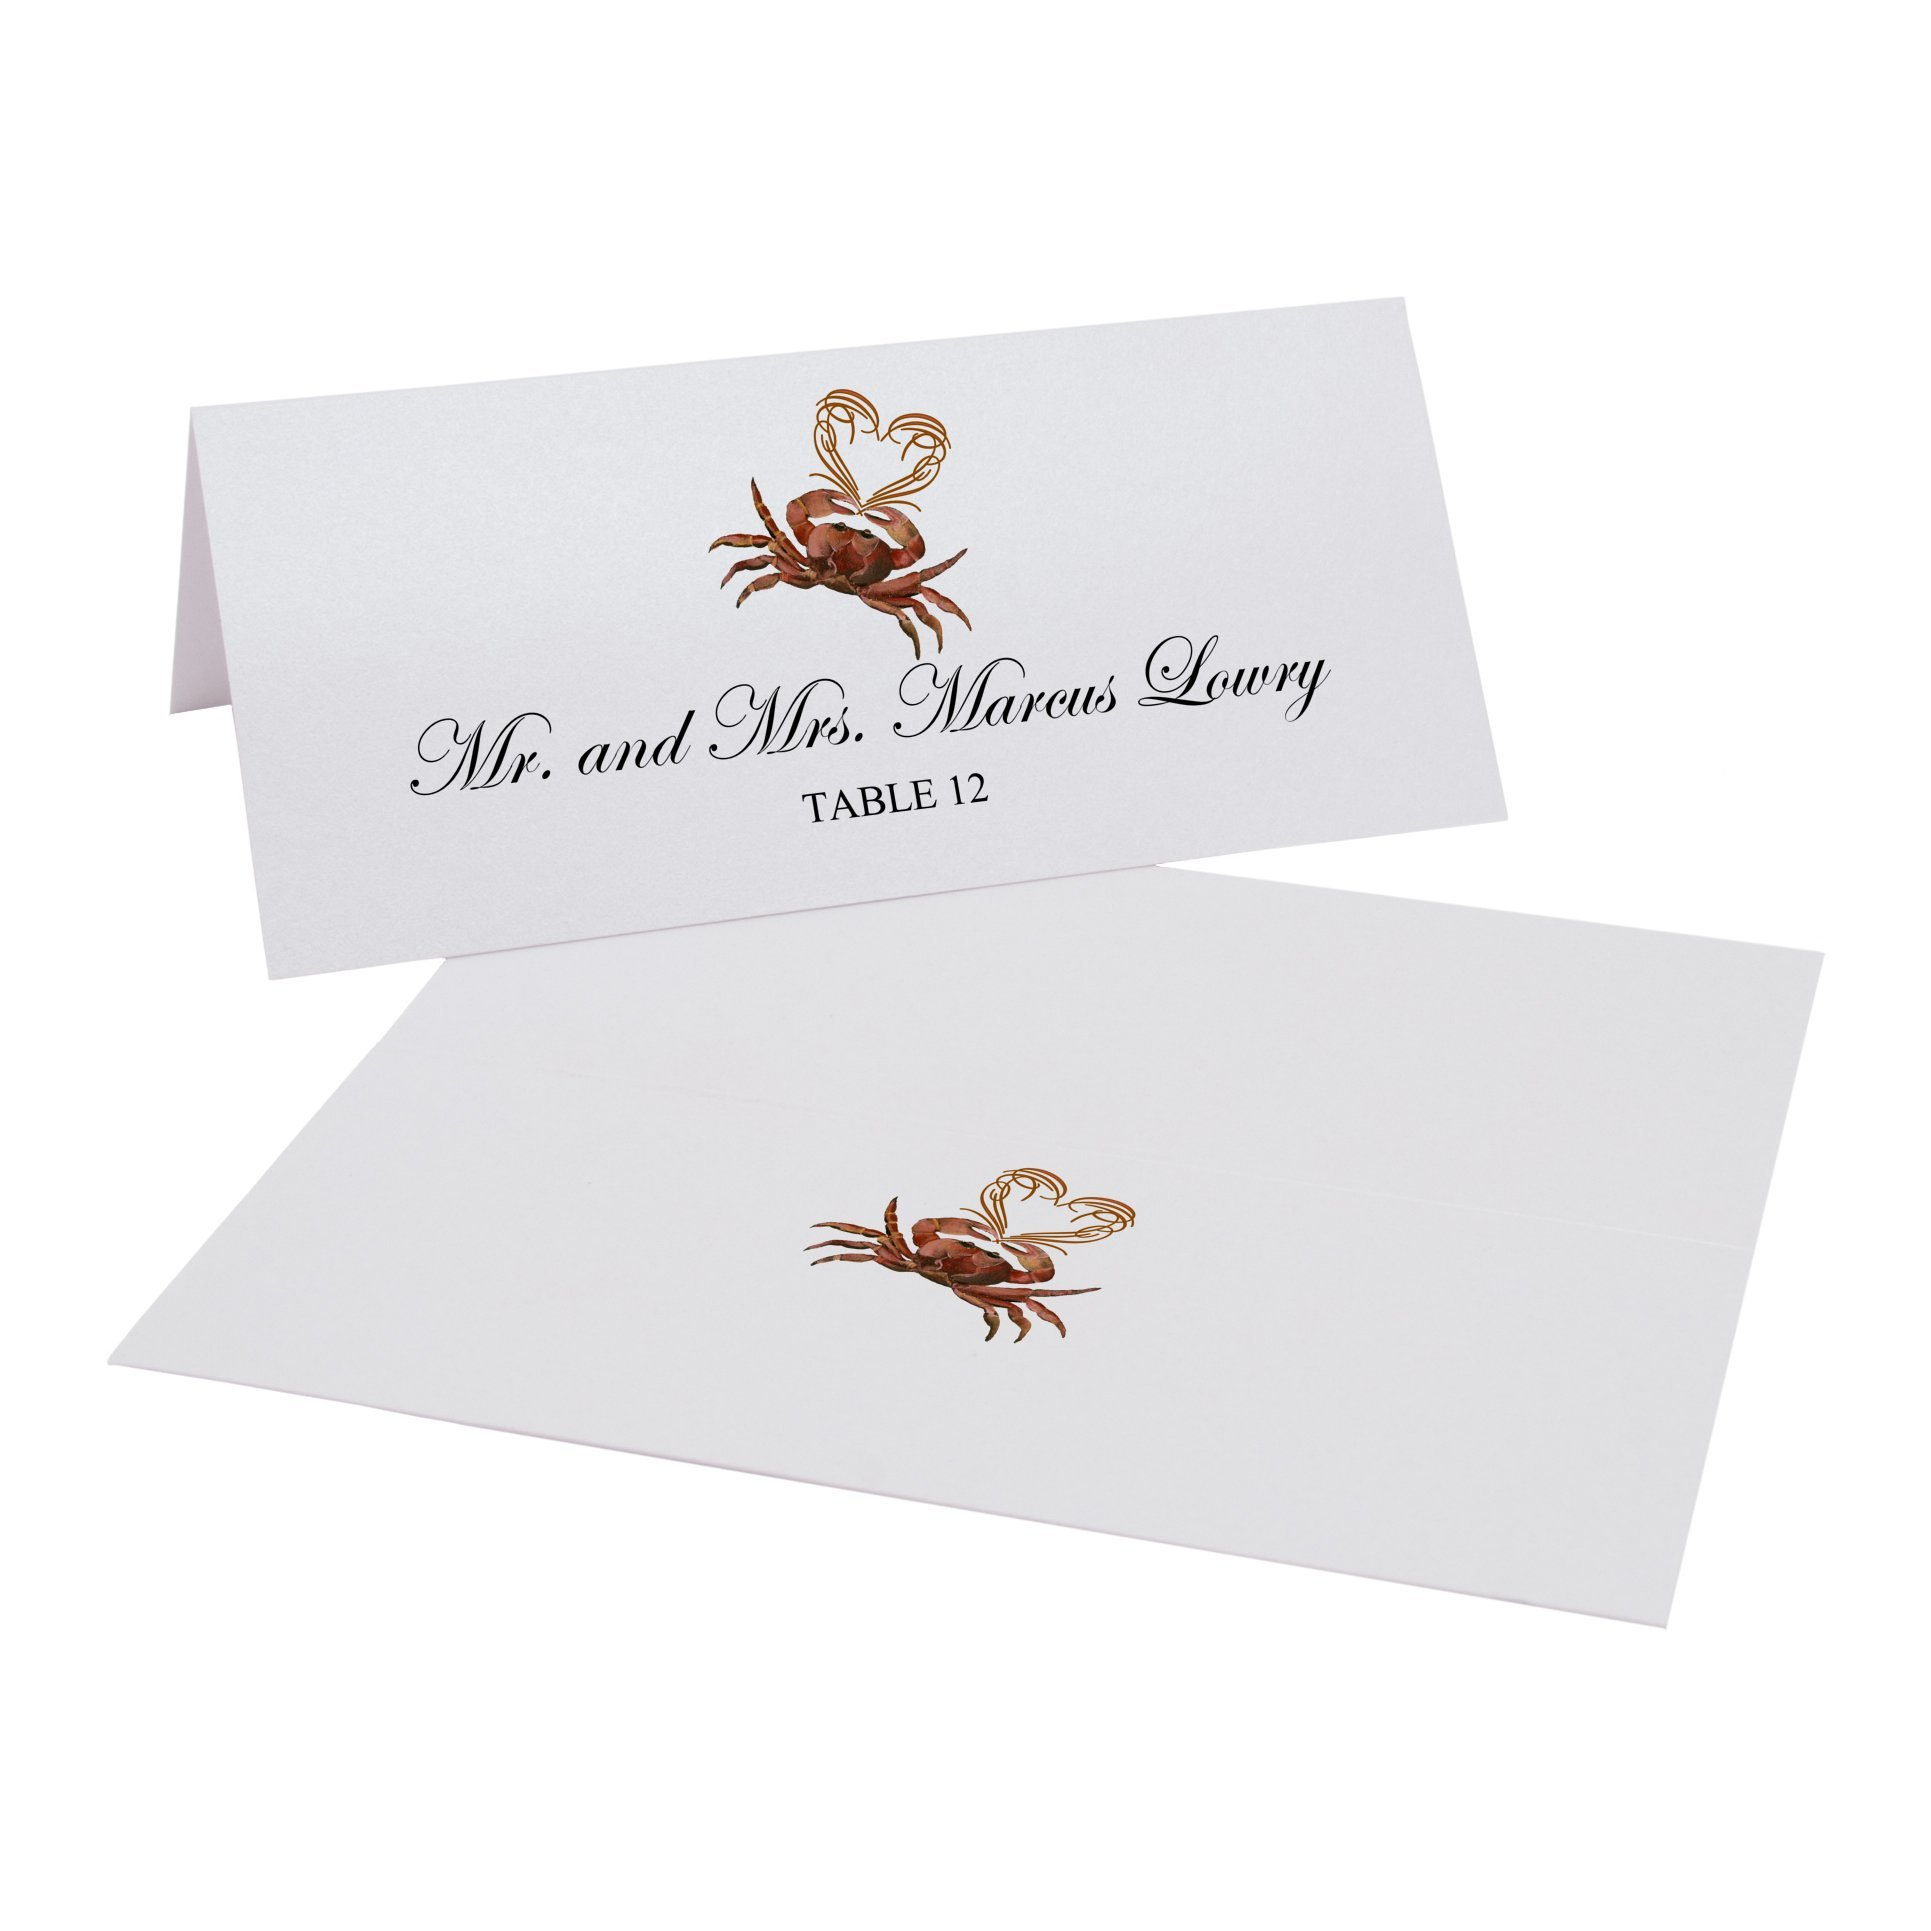 Crab and Heart Easy Print Place Cards, Pearl White, Set of 350 (88 Sheets)